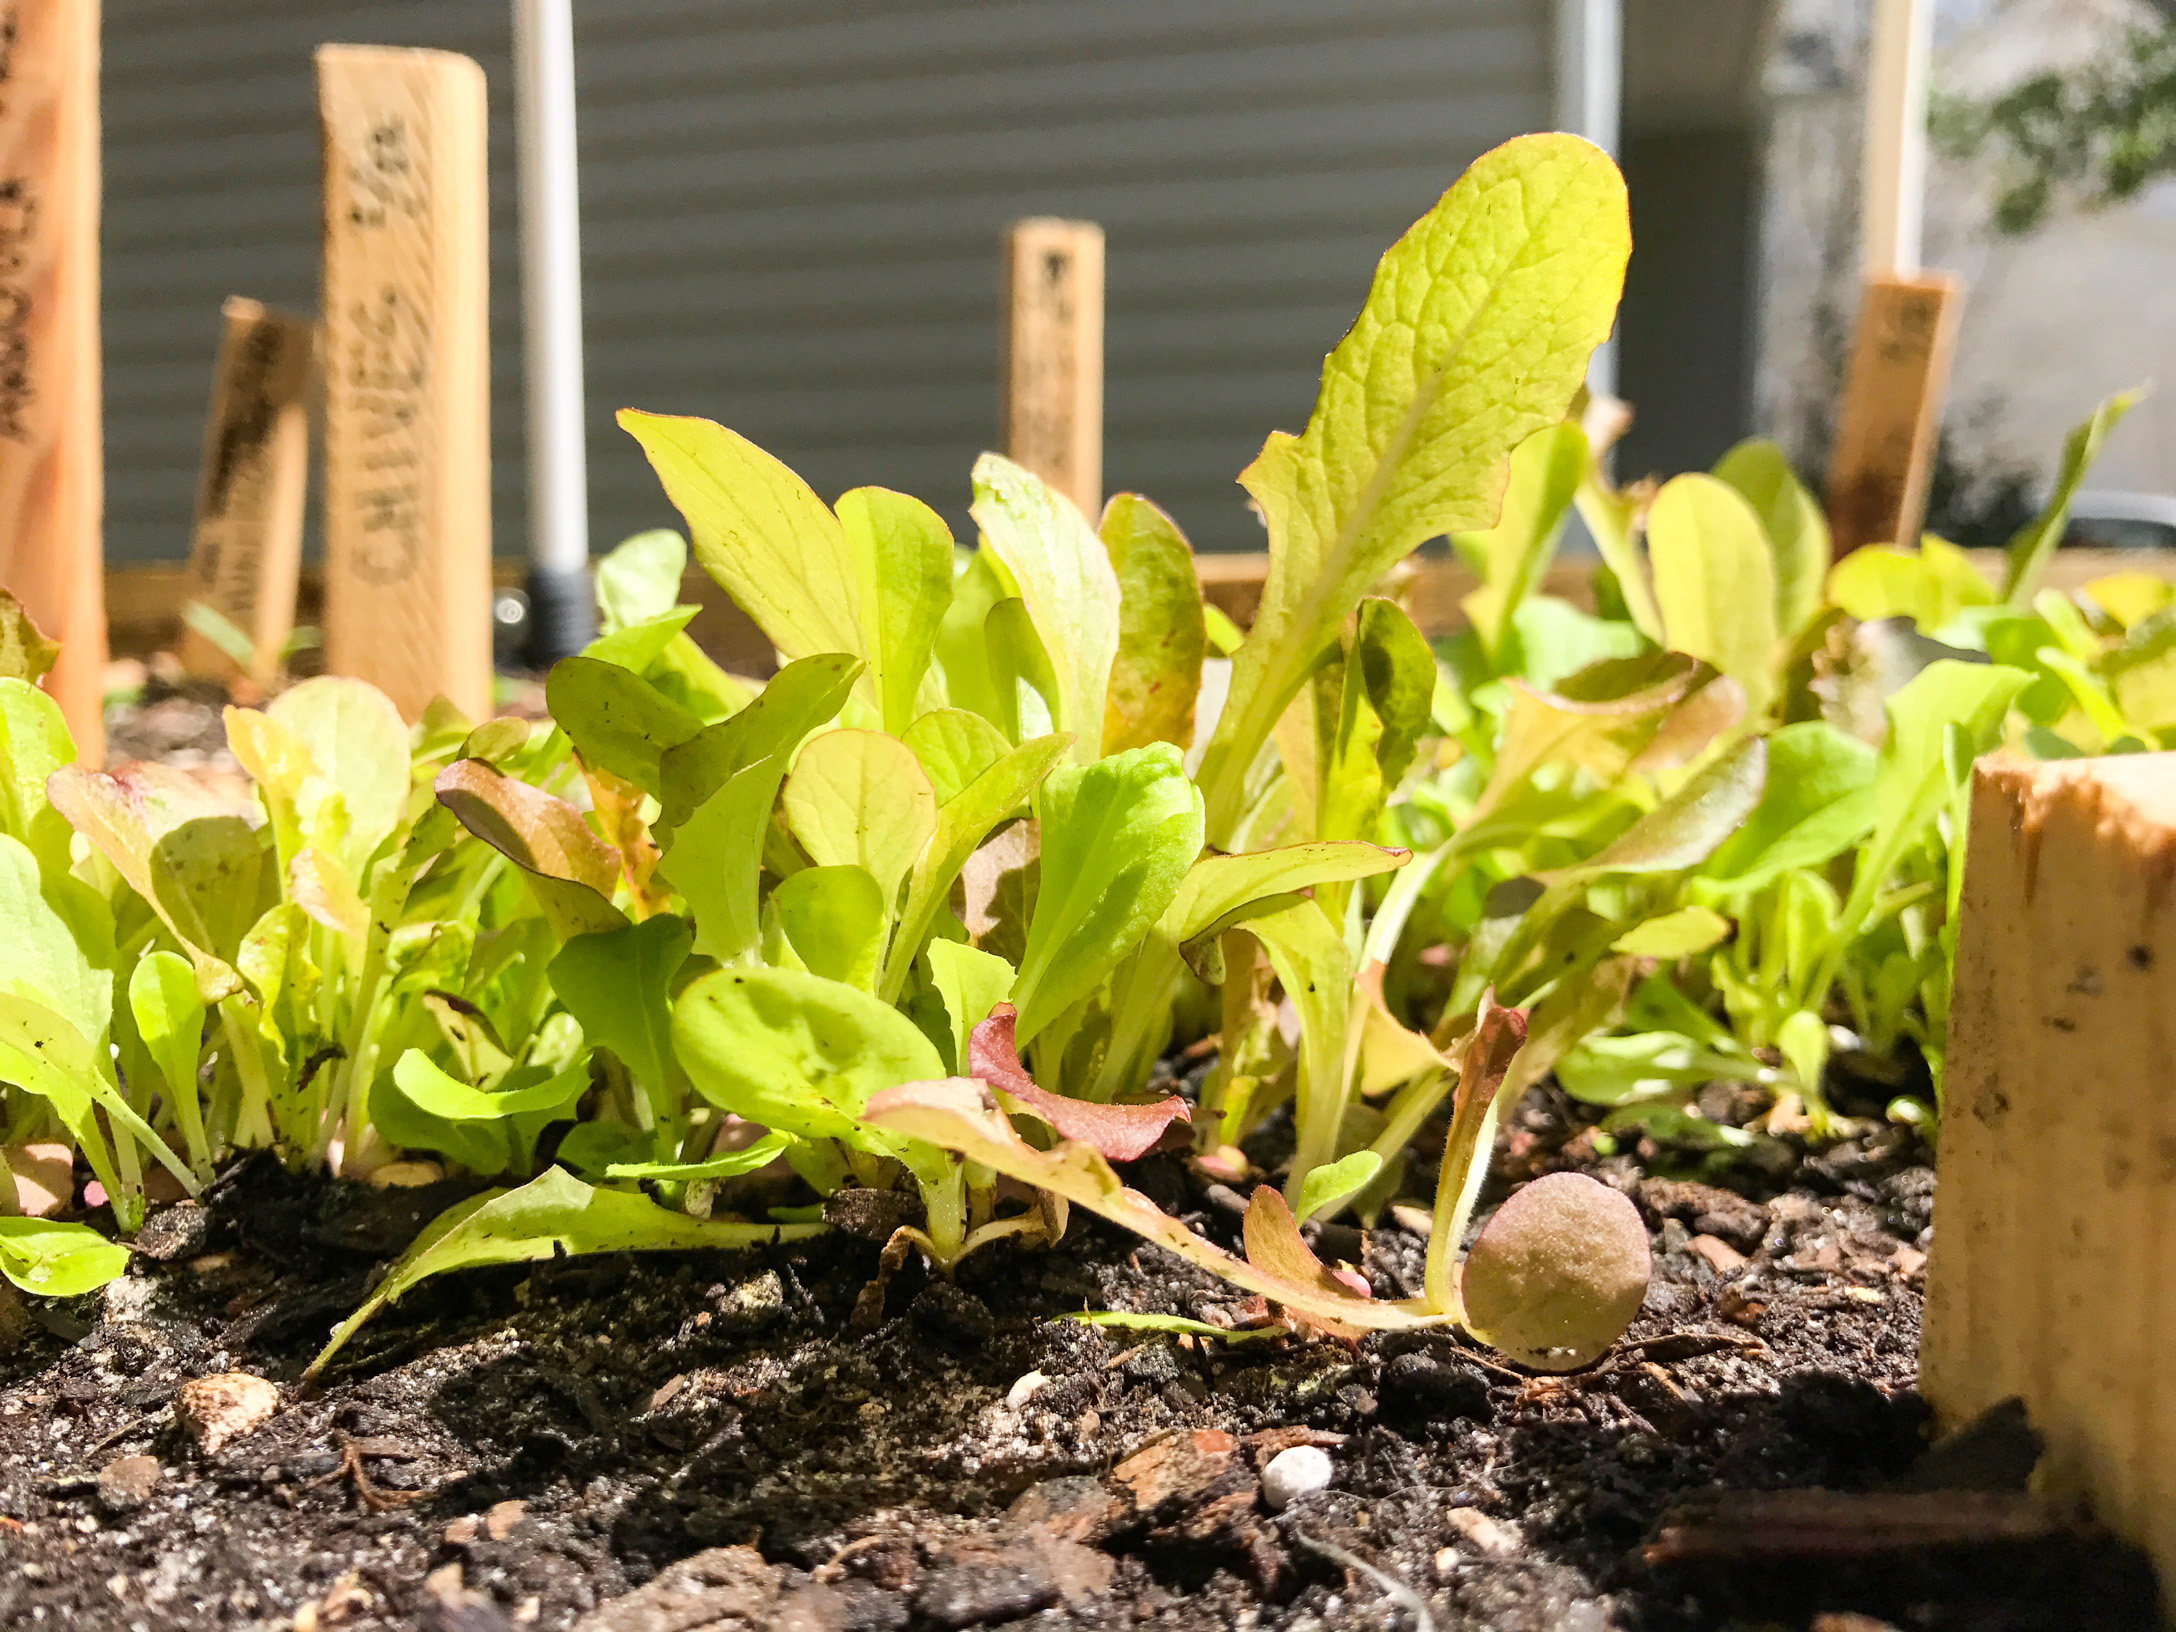 Red Wing Lettuce